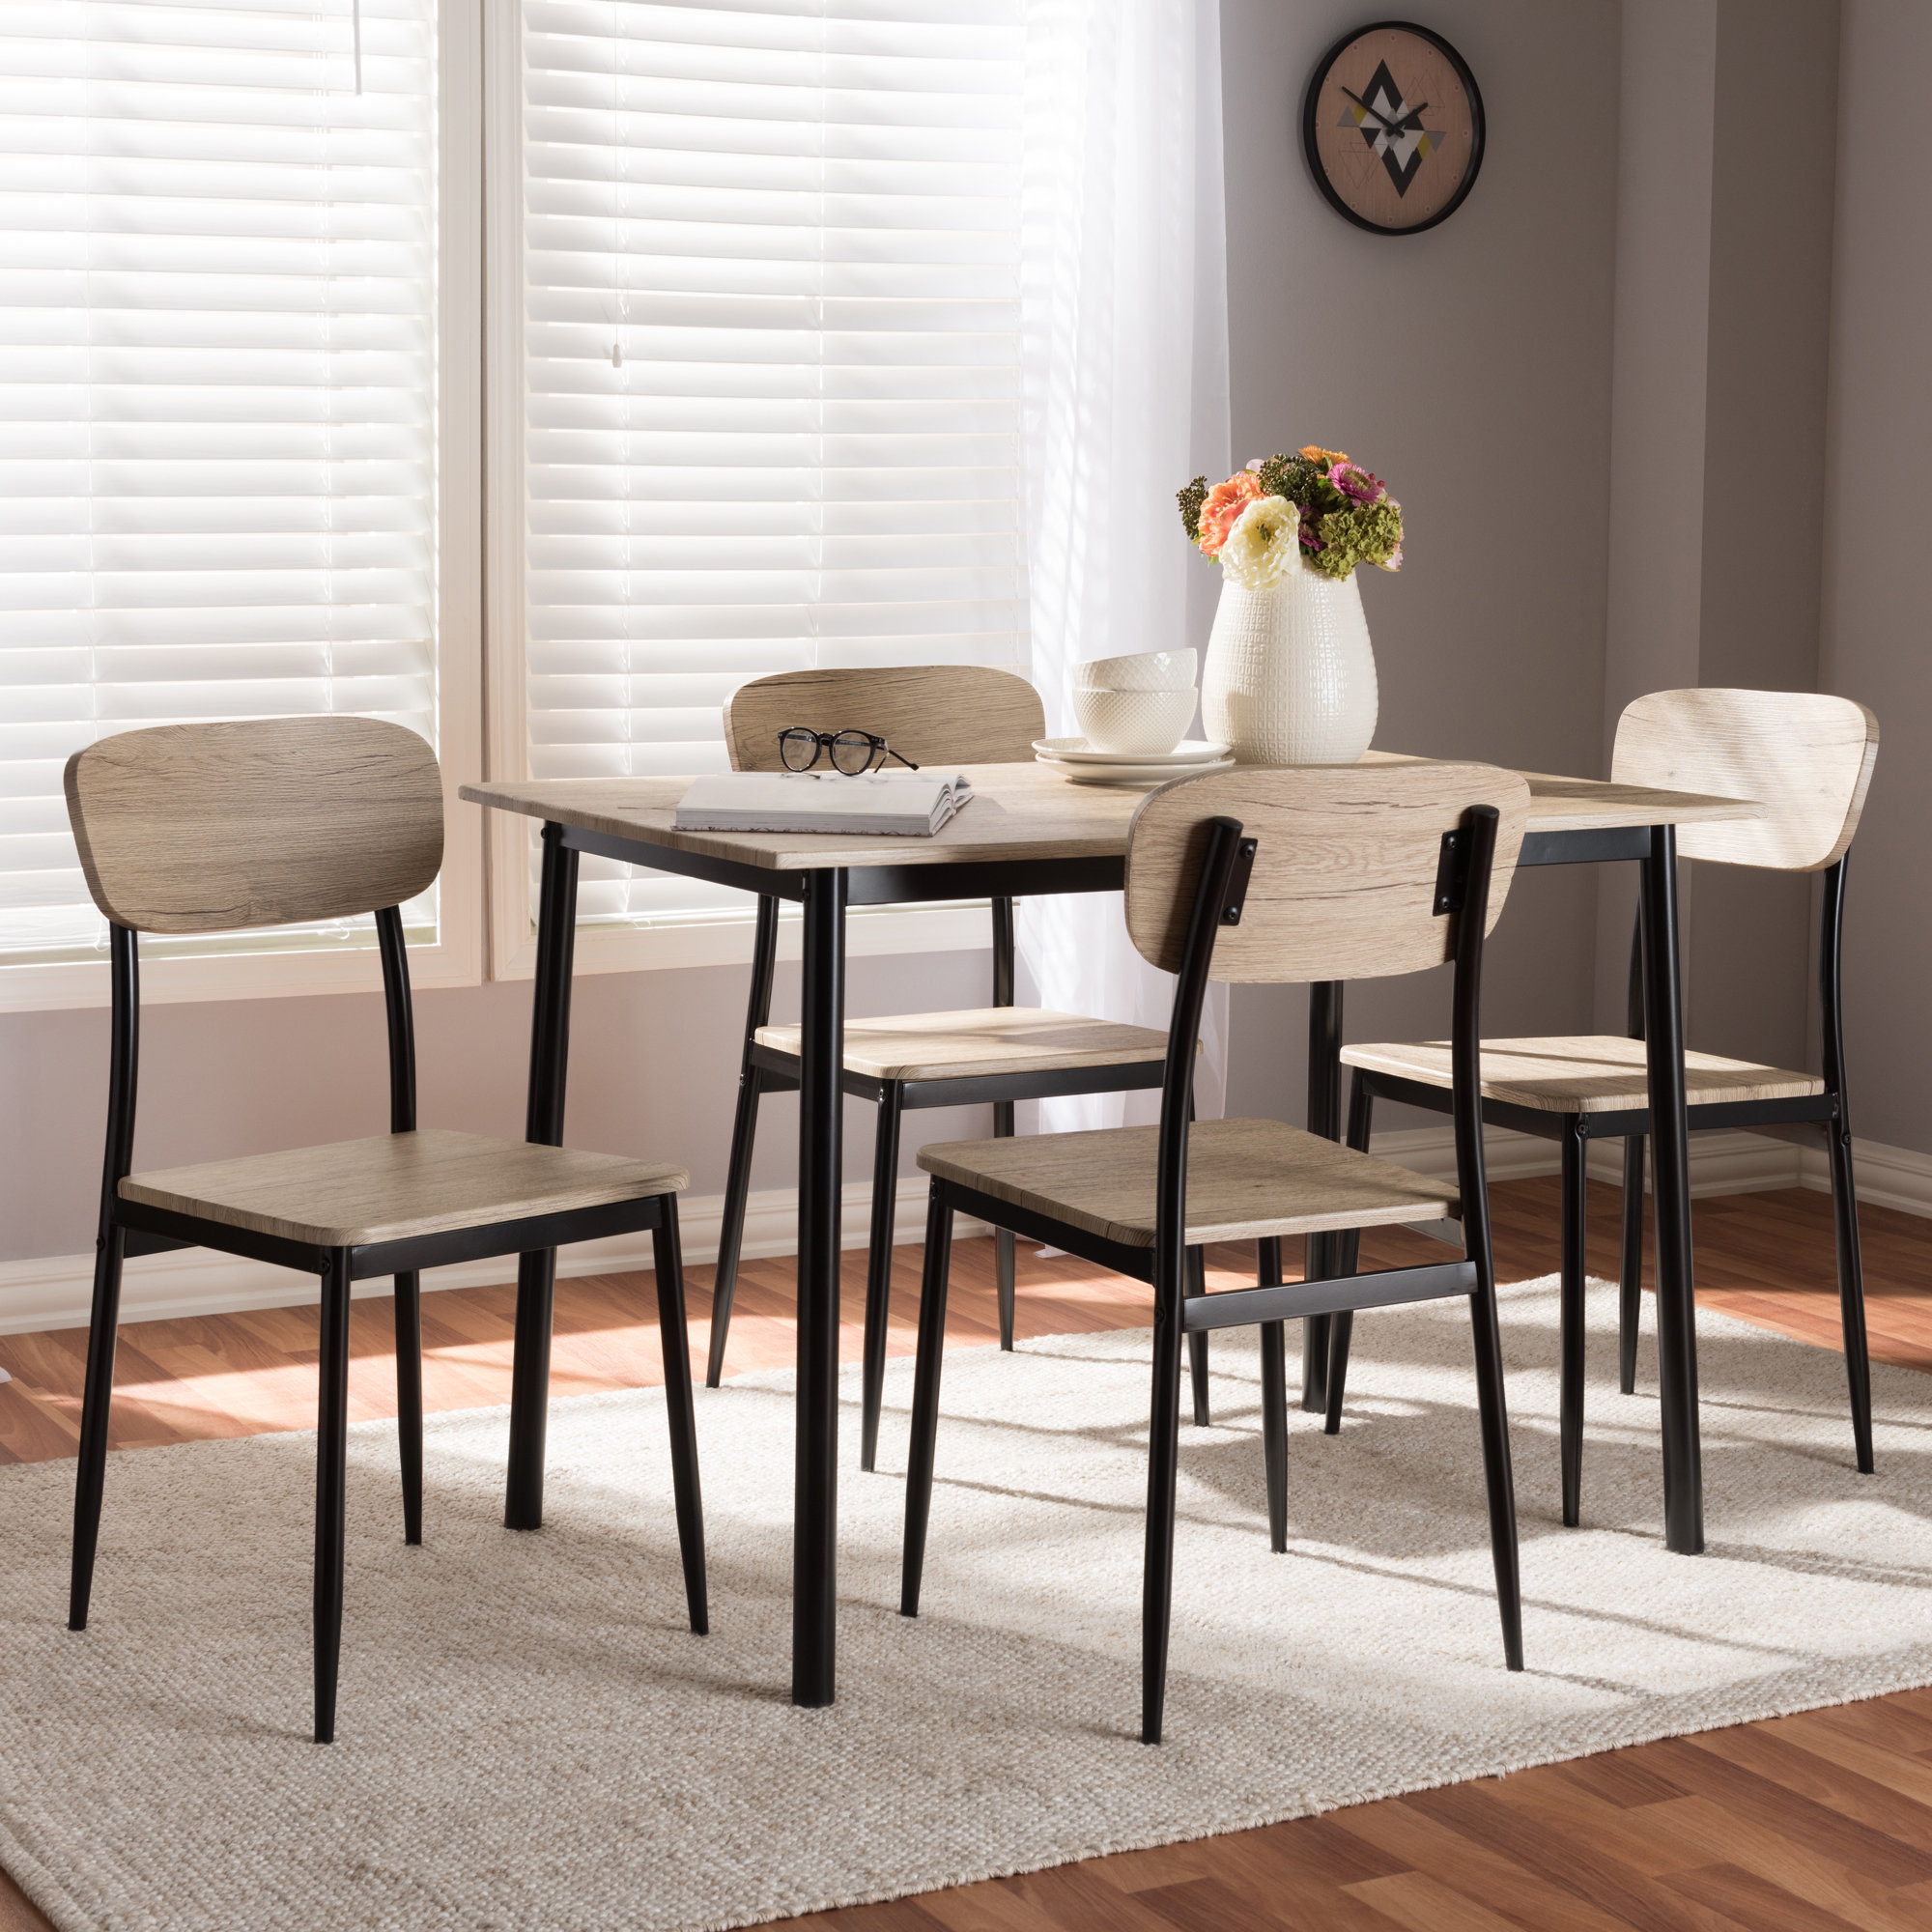 Most Popular Wiggs 5 Piece Dining Sets Within Wiggs 5 Piece Dining Set (View 12 of 25)